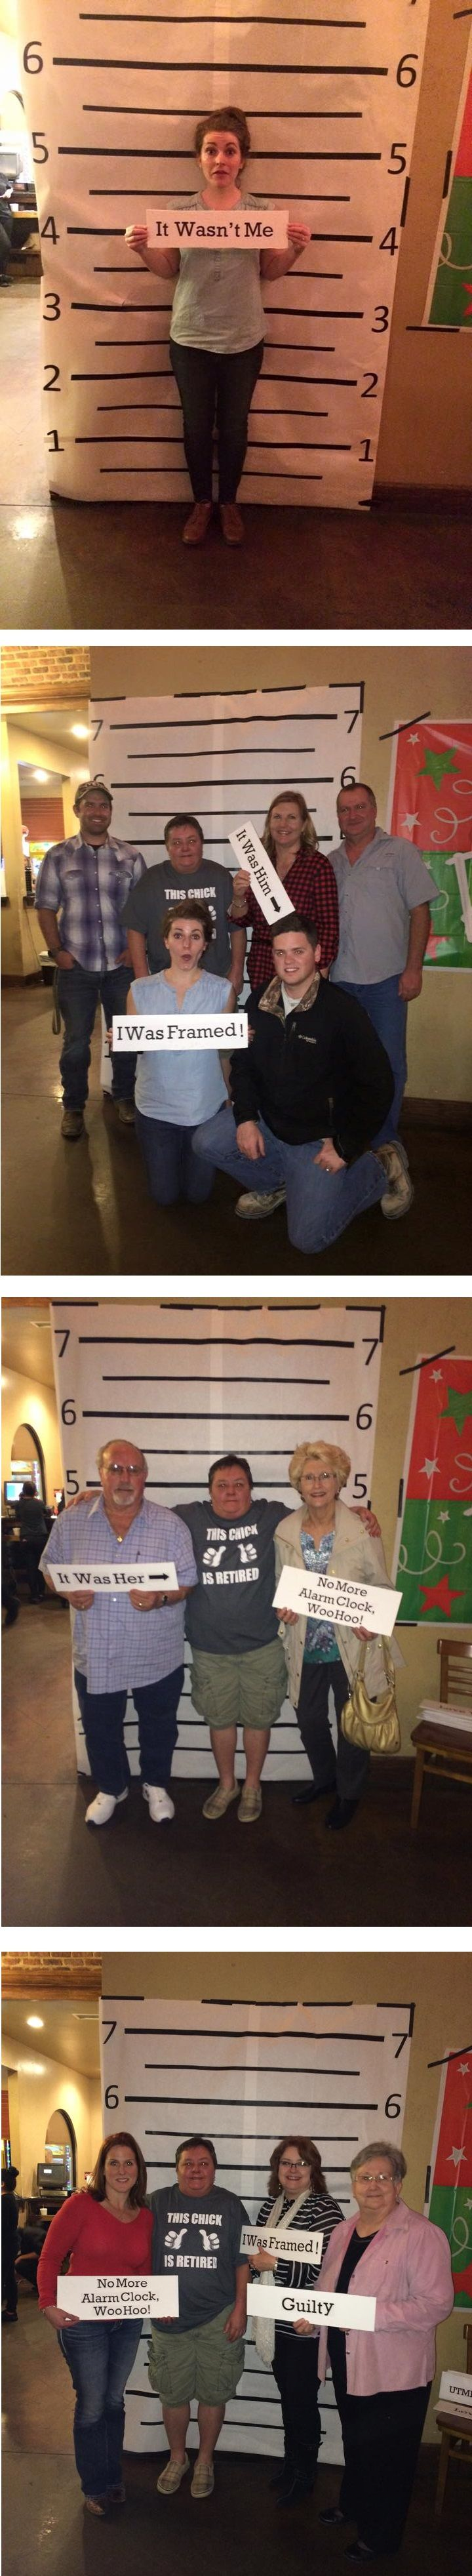 Police Retirement Party Idea - Make a lineup backdrop for guests to take pictures in front of. Bonus - make fun mugshot signs for guests to hold in the pictures!